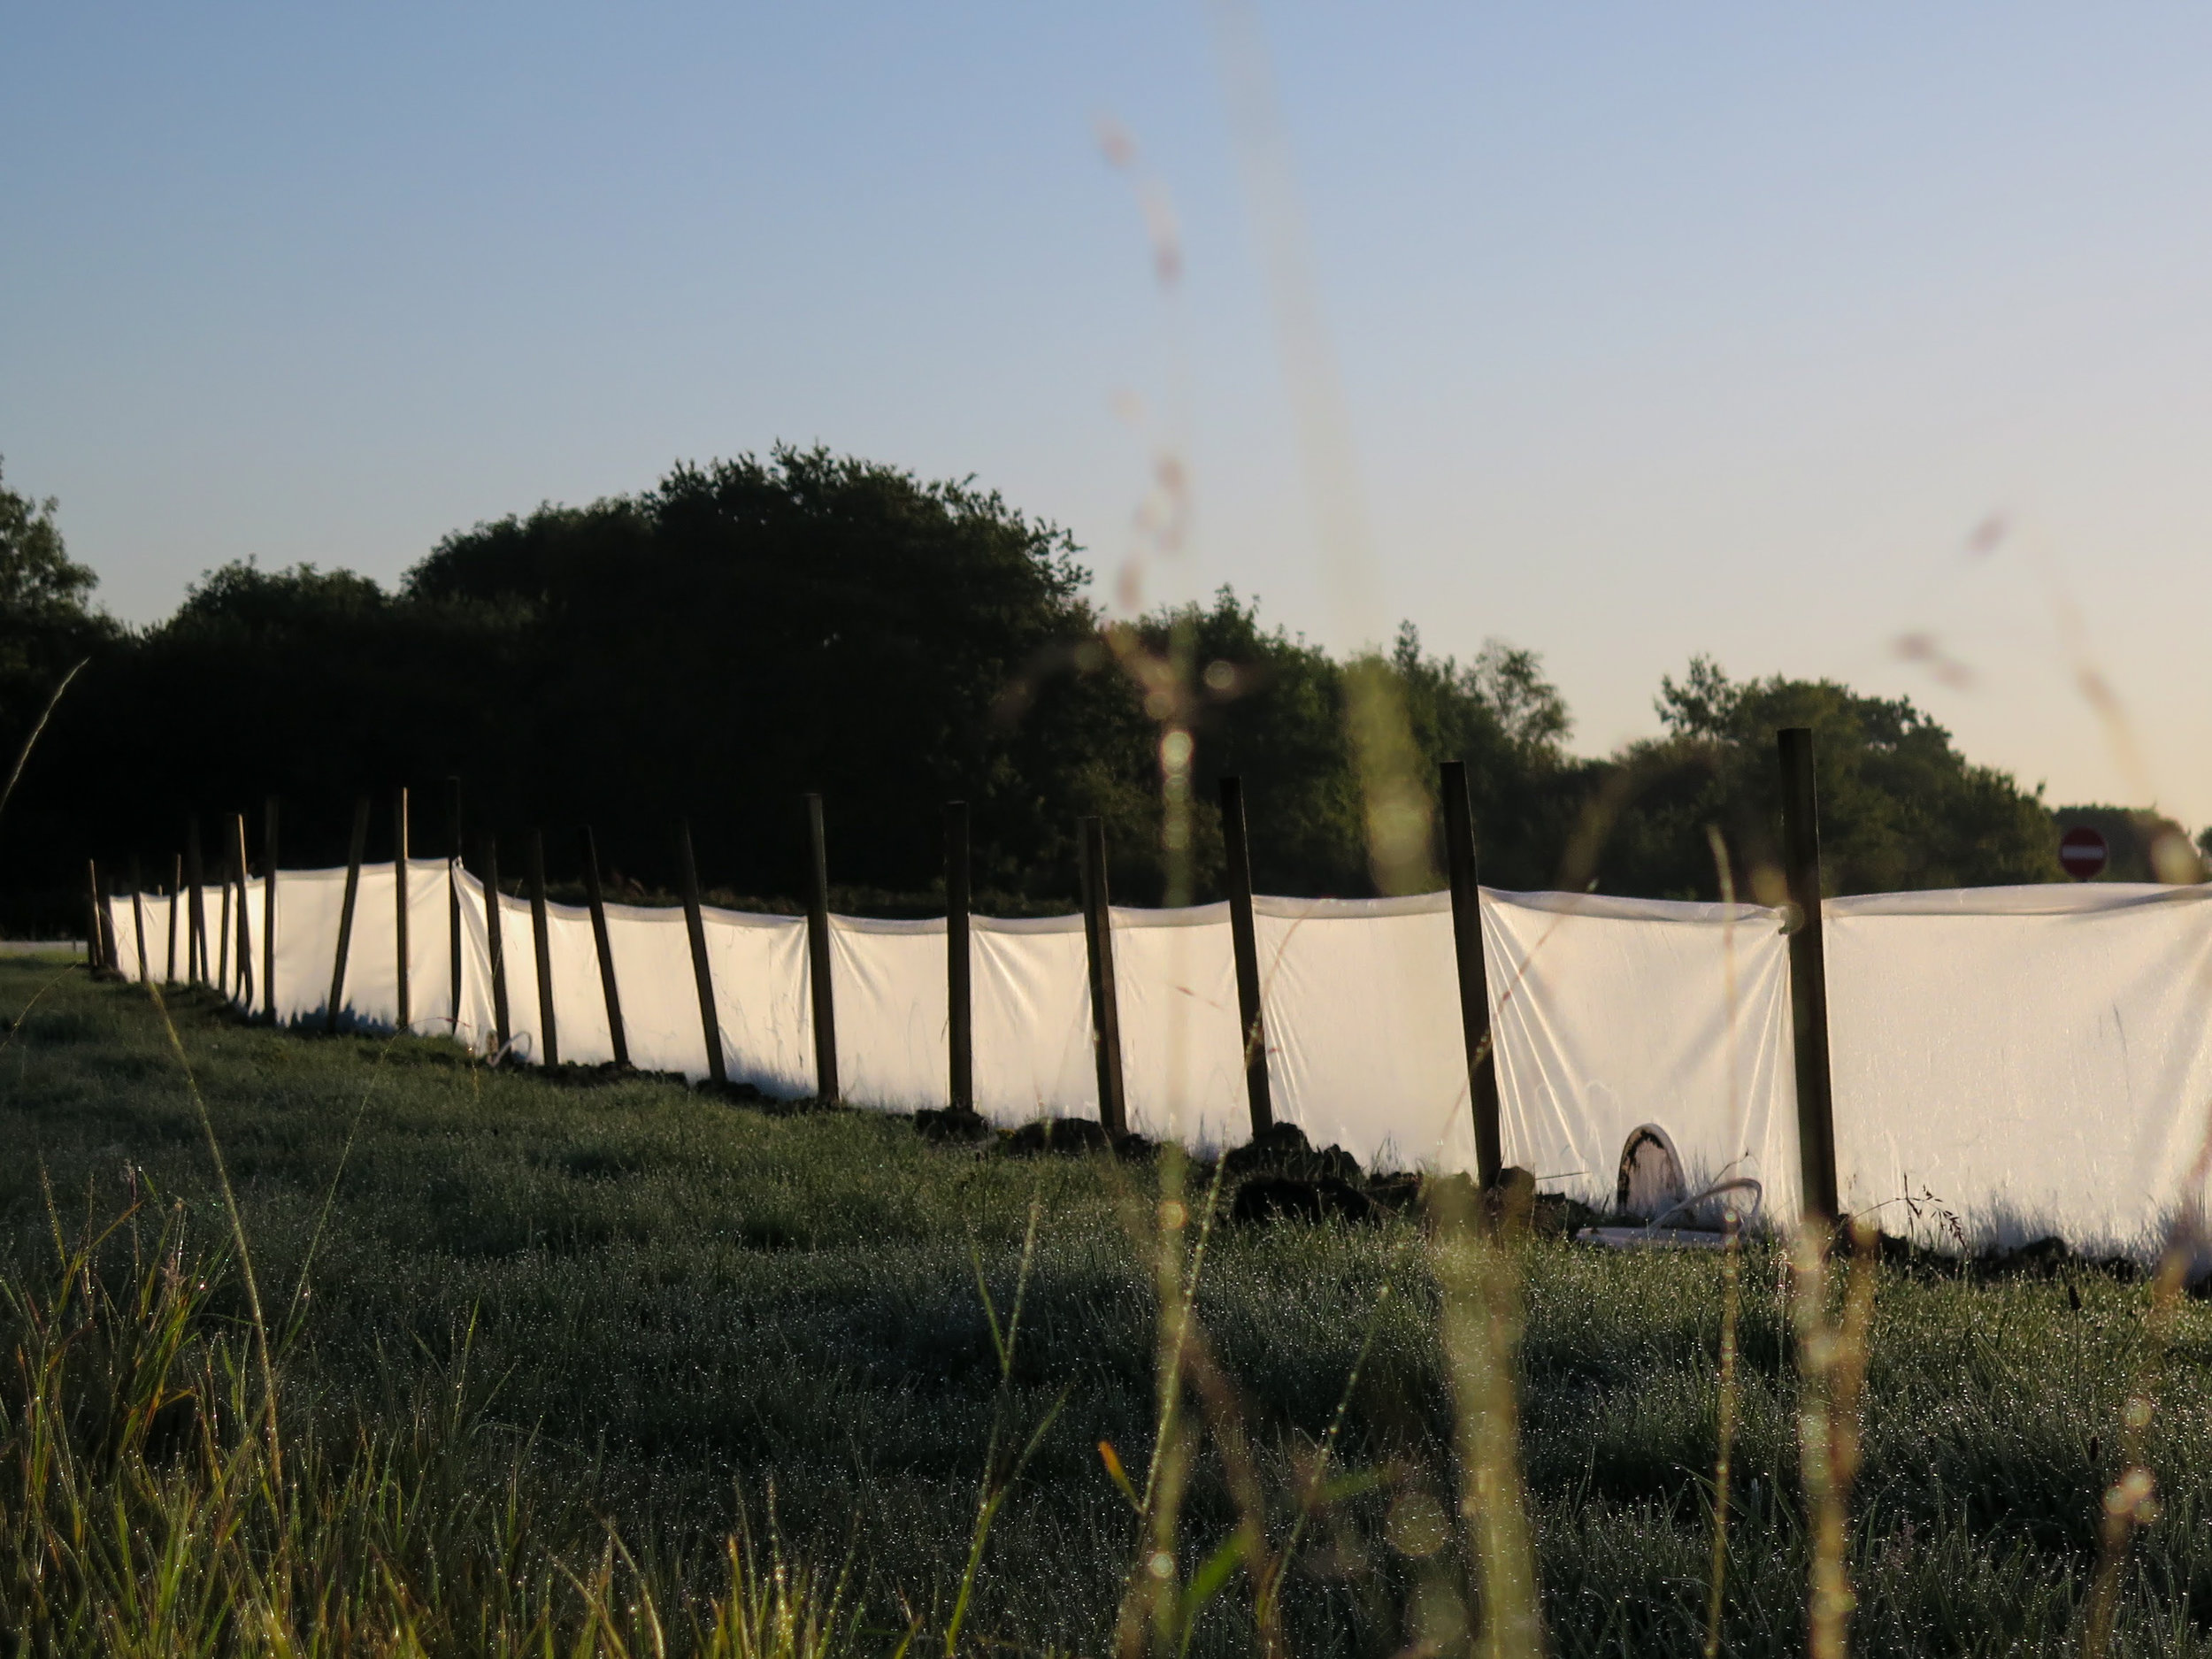 A great crested newt fence at one of LSC's translocation sites - the pitfall traps and artificual refugia are placed along the base of this fence to capture the newts on the inside, whilst the fencing itself prevents newts from re-entering the site.